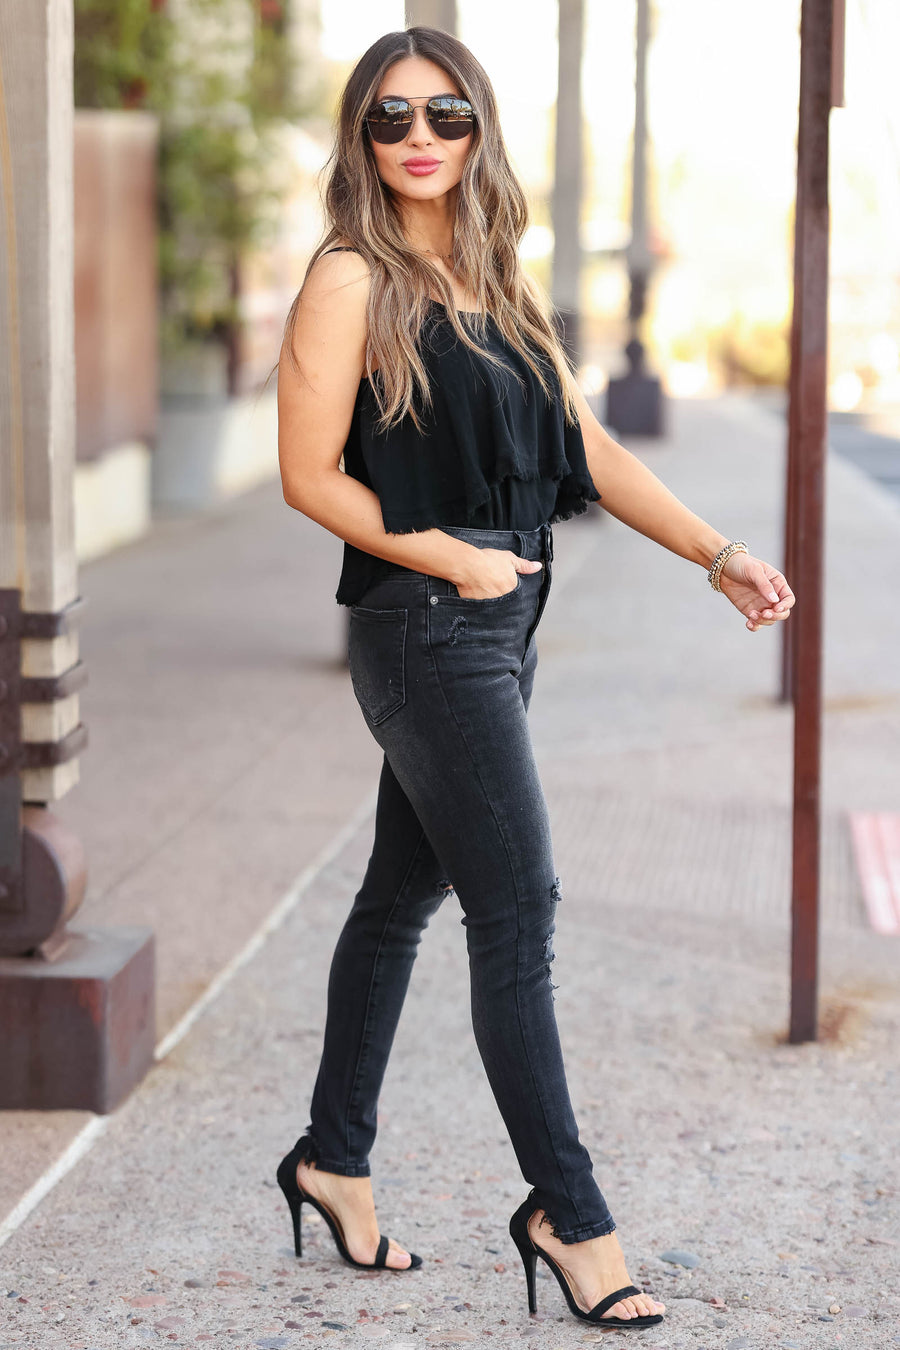 RISEN Zoey Distressed Skinny Jeans - Vintage Black closet candy women's trendy vintage wash ripped jeans front